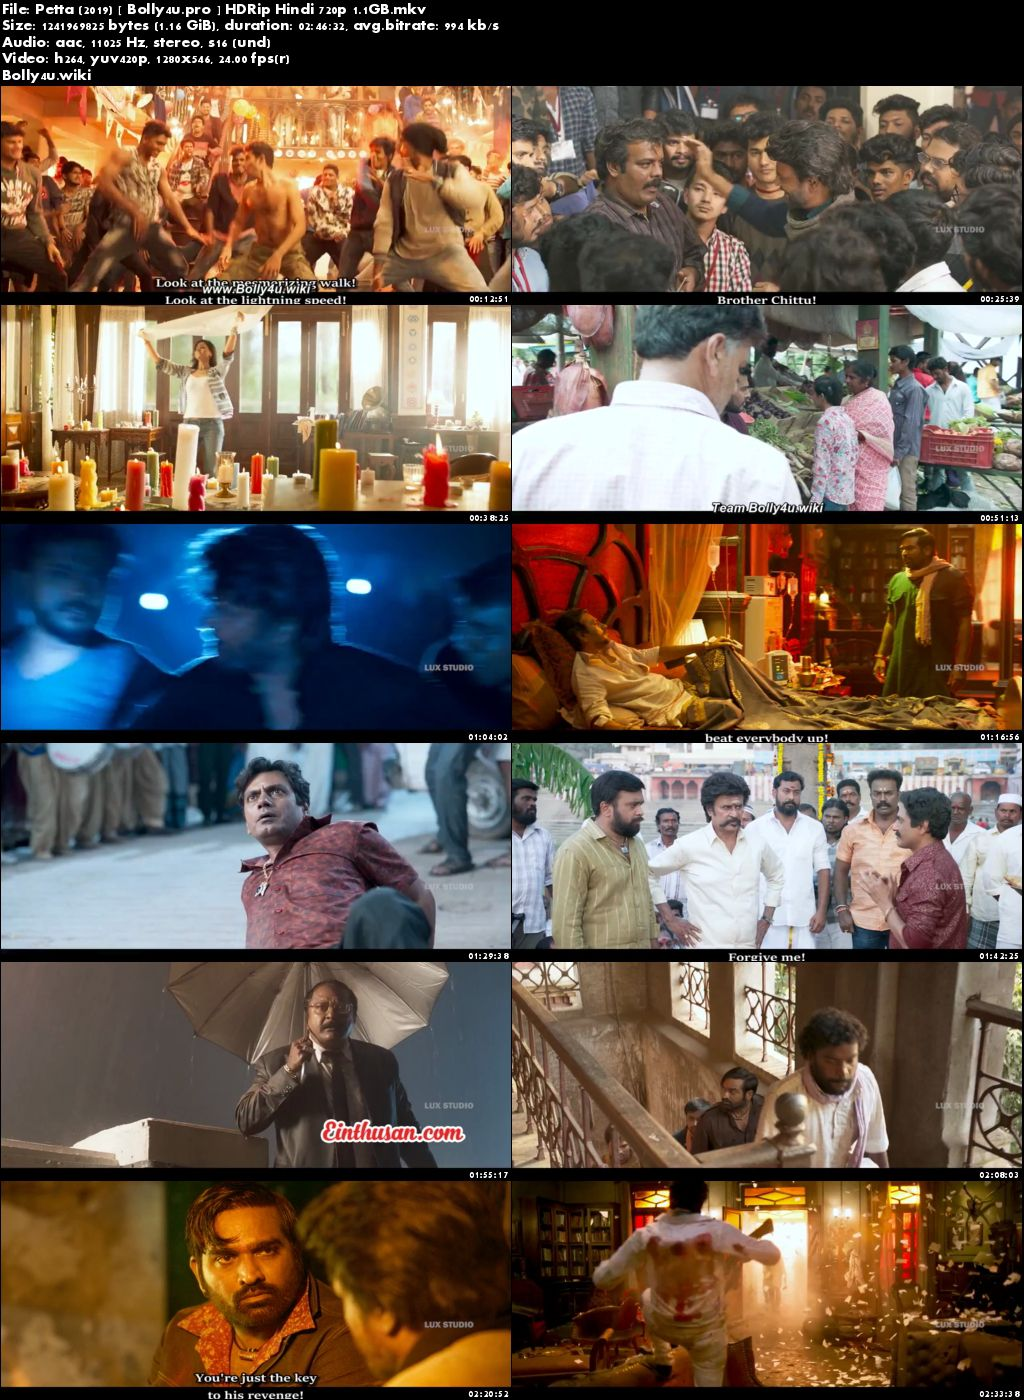 Petta 2019 HDRip 1.1Gb Full Hindi Movie Download 720p